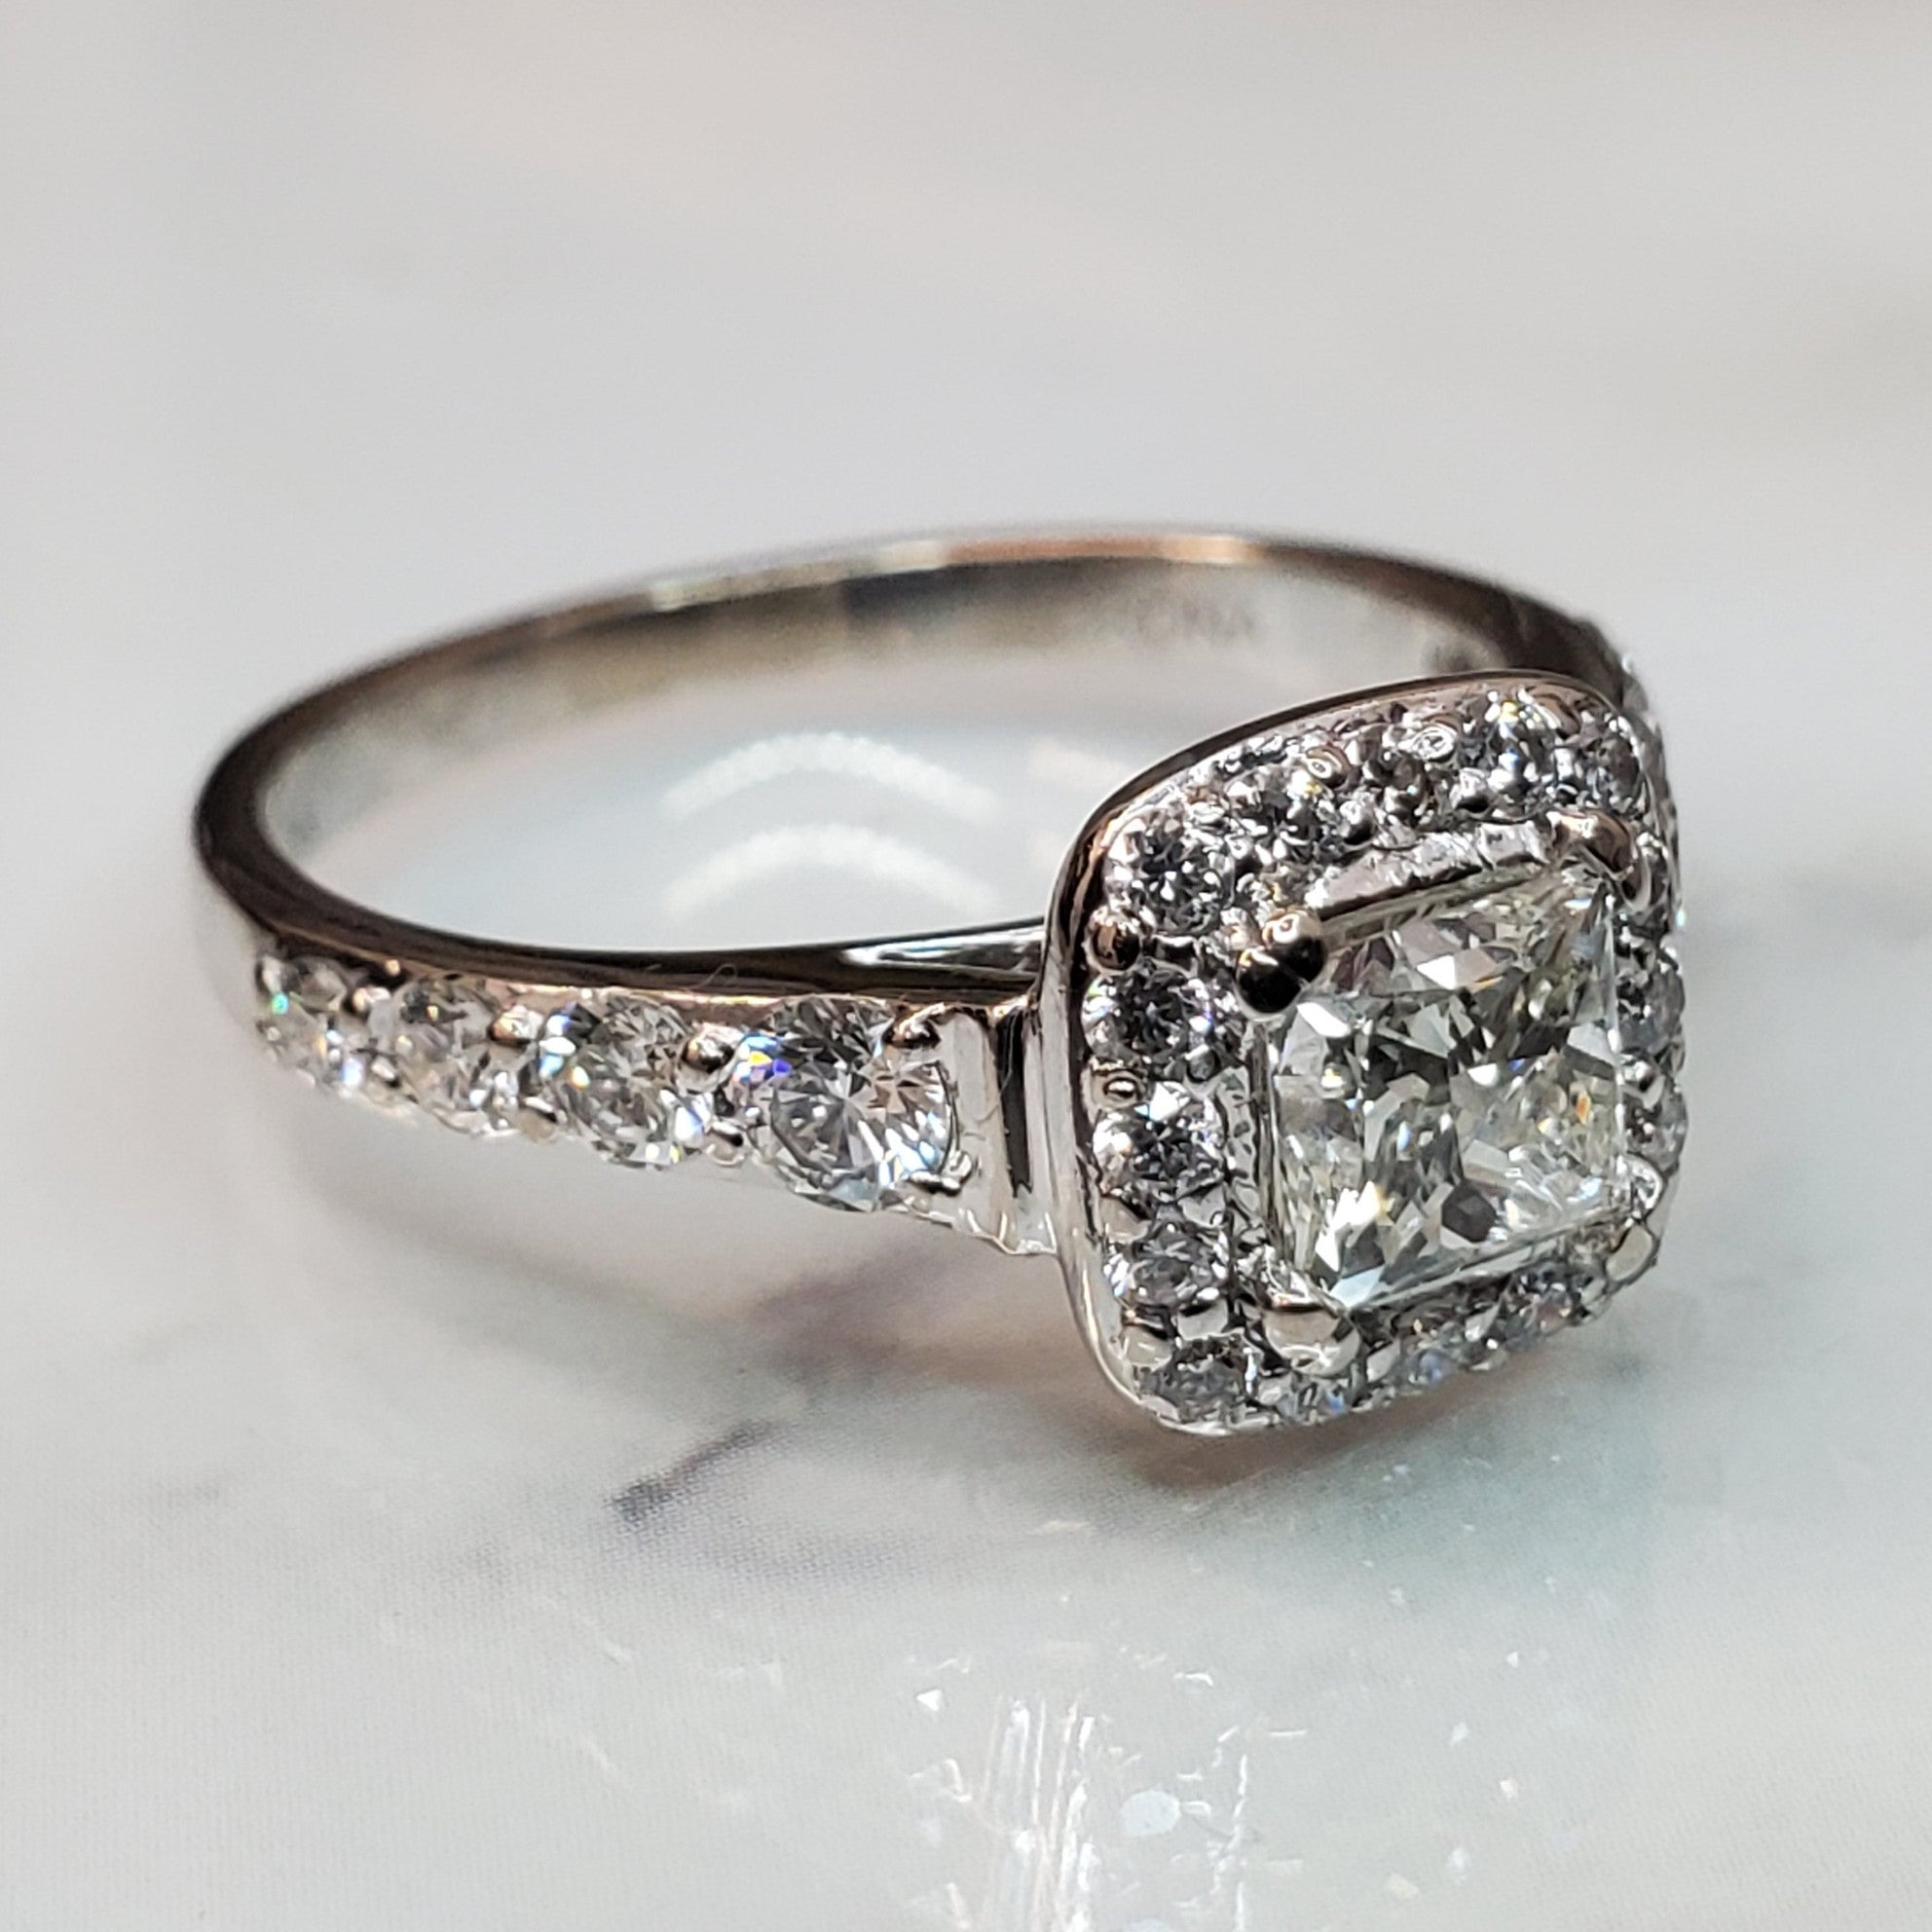 pre-owned 18k white gold princess cut diamond engagement ringond